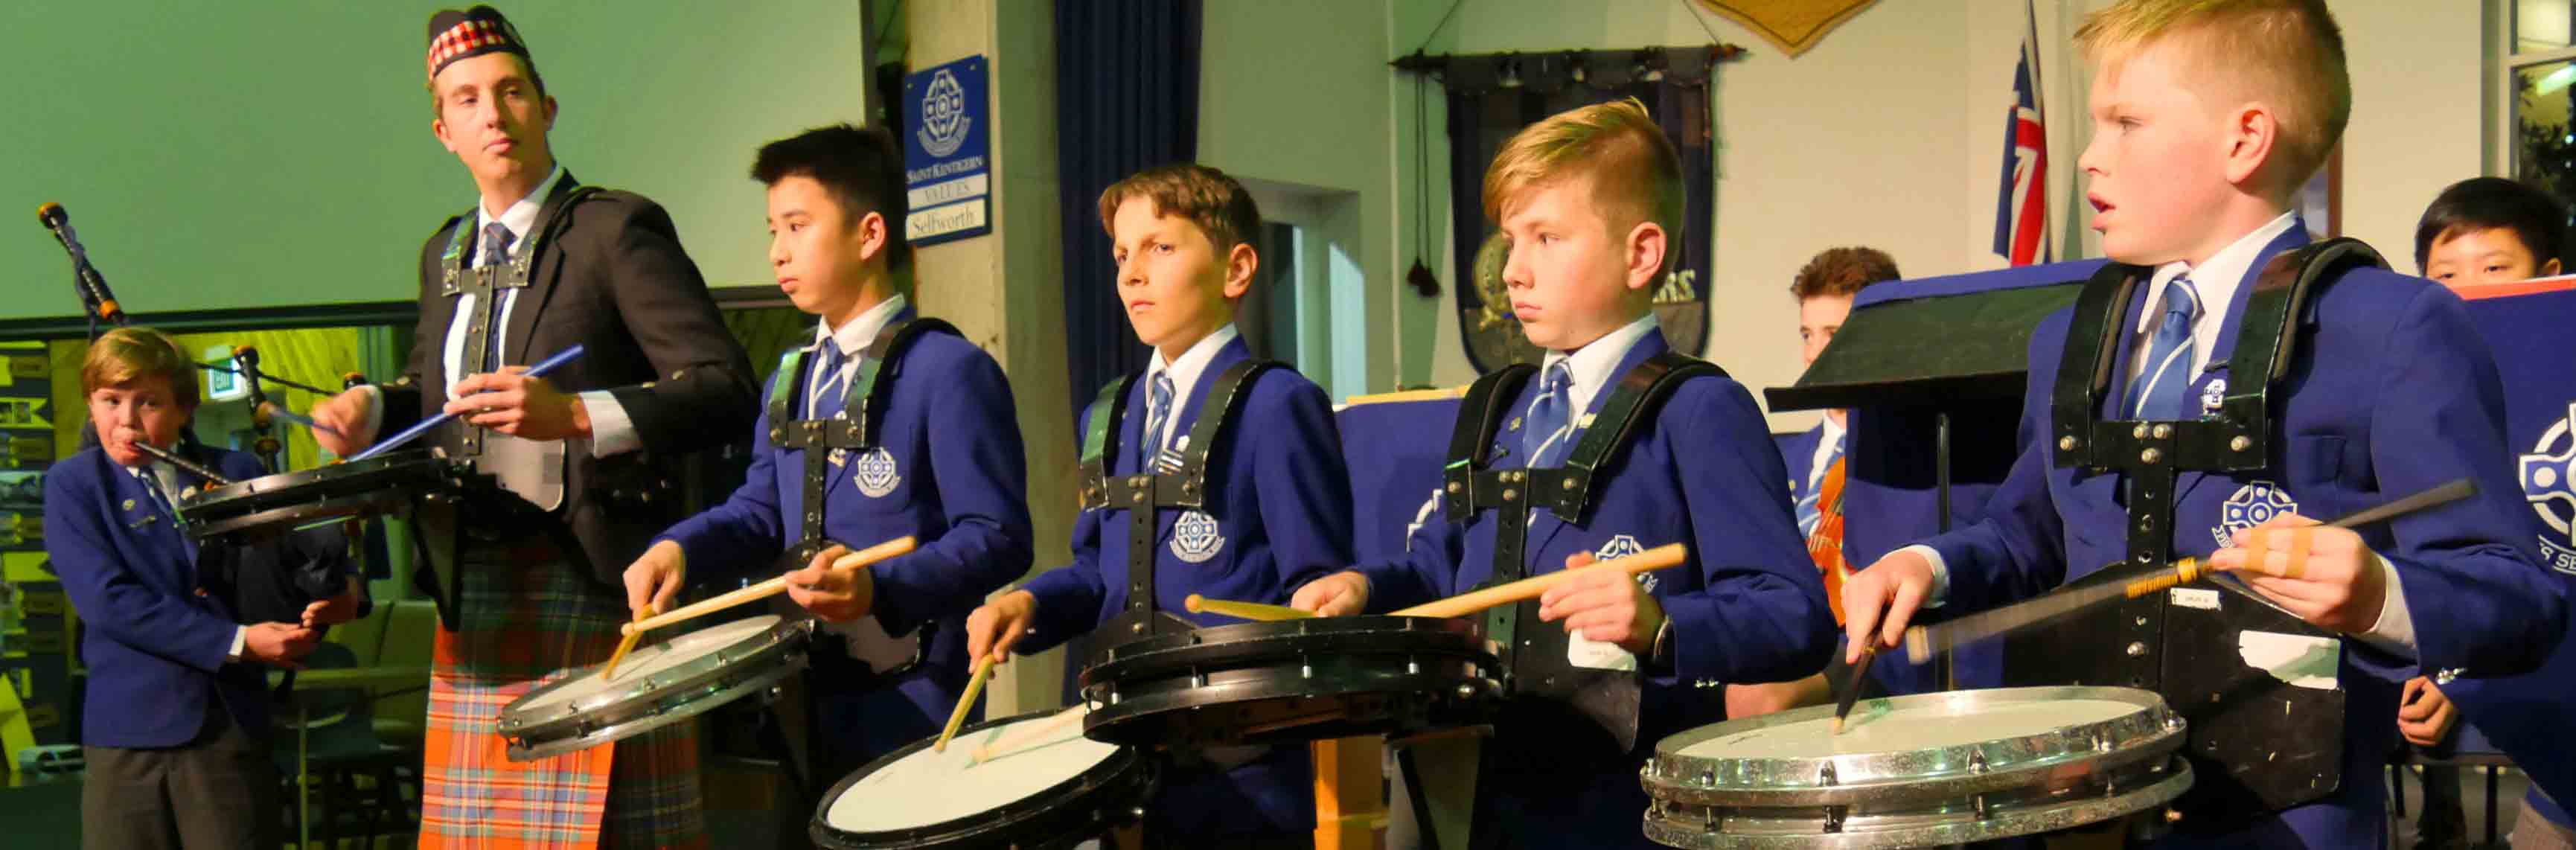 Saint-Kentigern-Boys'-School-Music-Pipe-Band.jpg